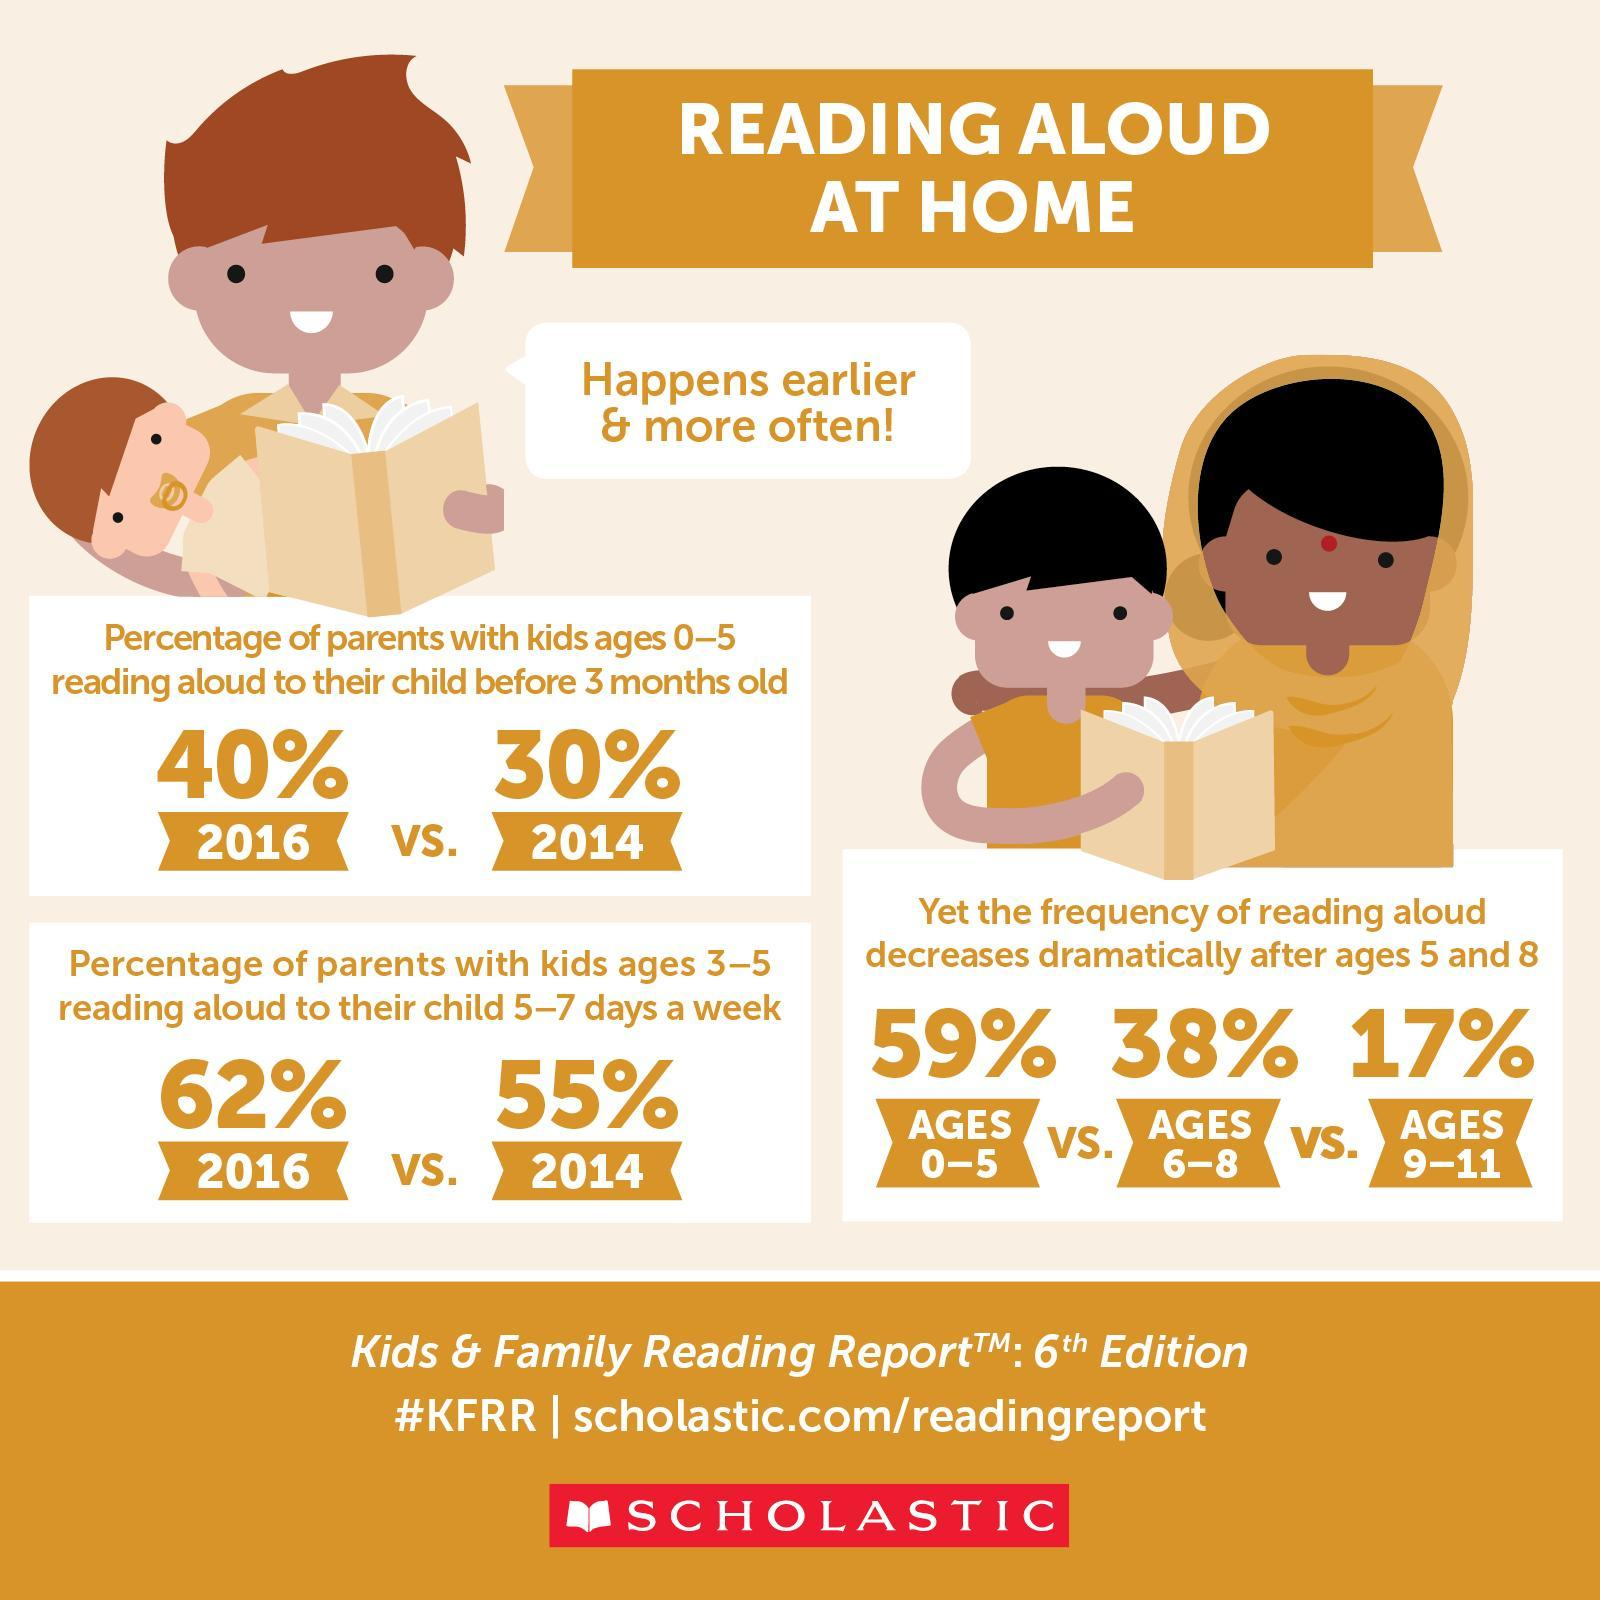 Reading Aloud at Home